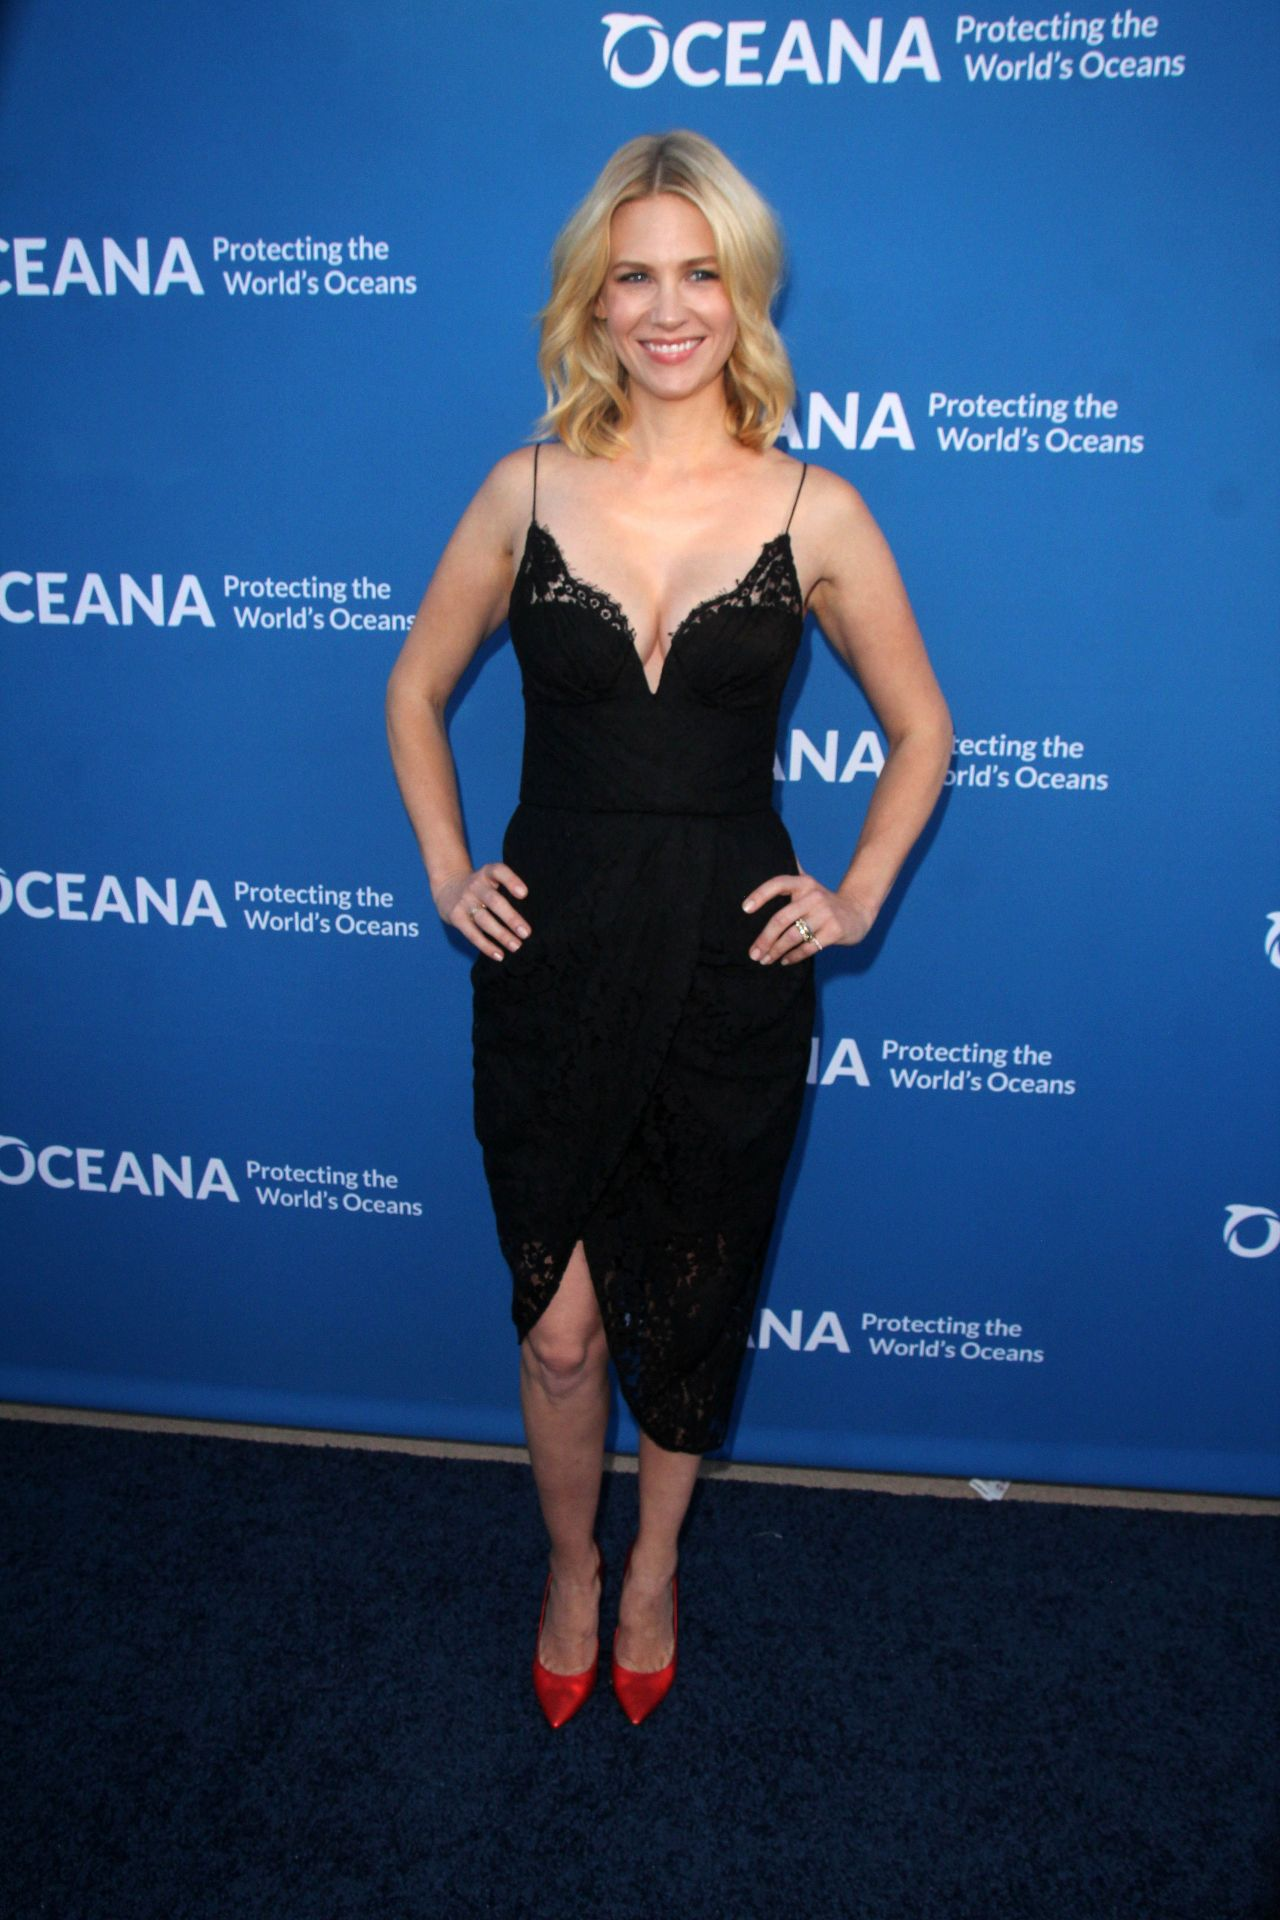 january-jones-oceana-concert-for-our-oceans-in-beverly-hills-september-2015_5